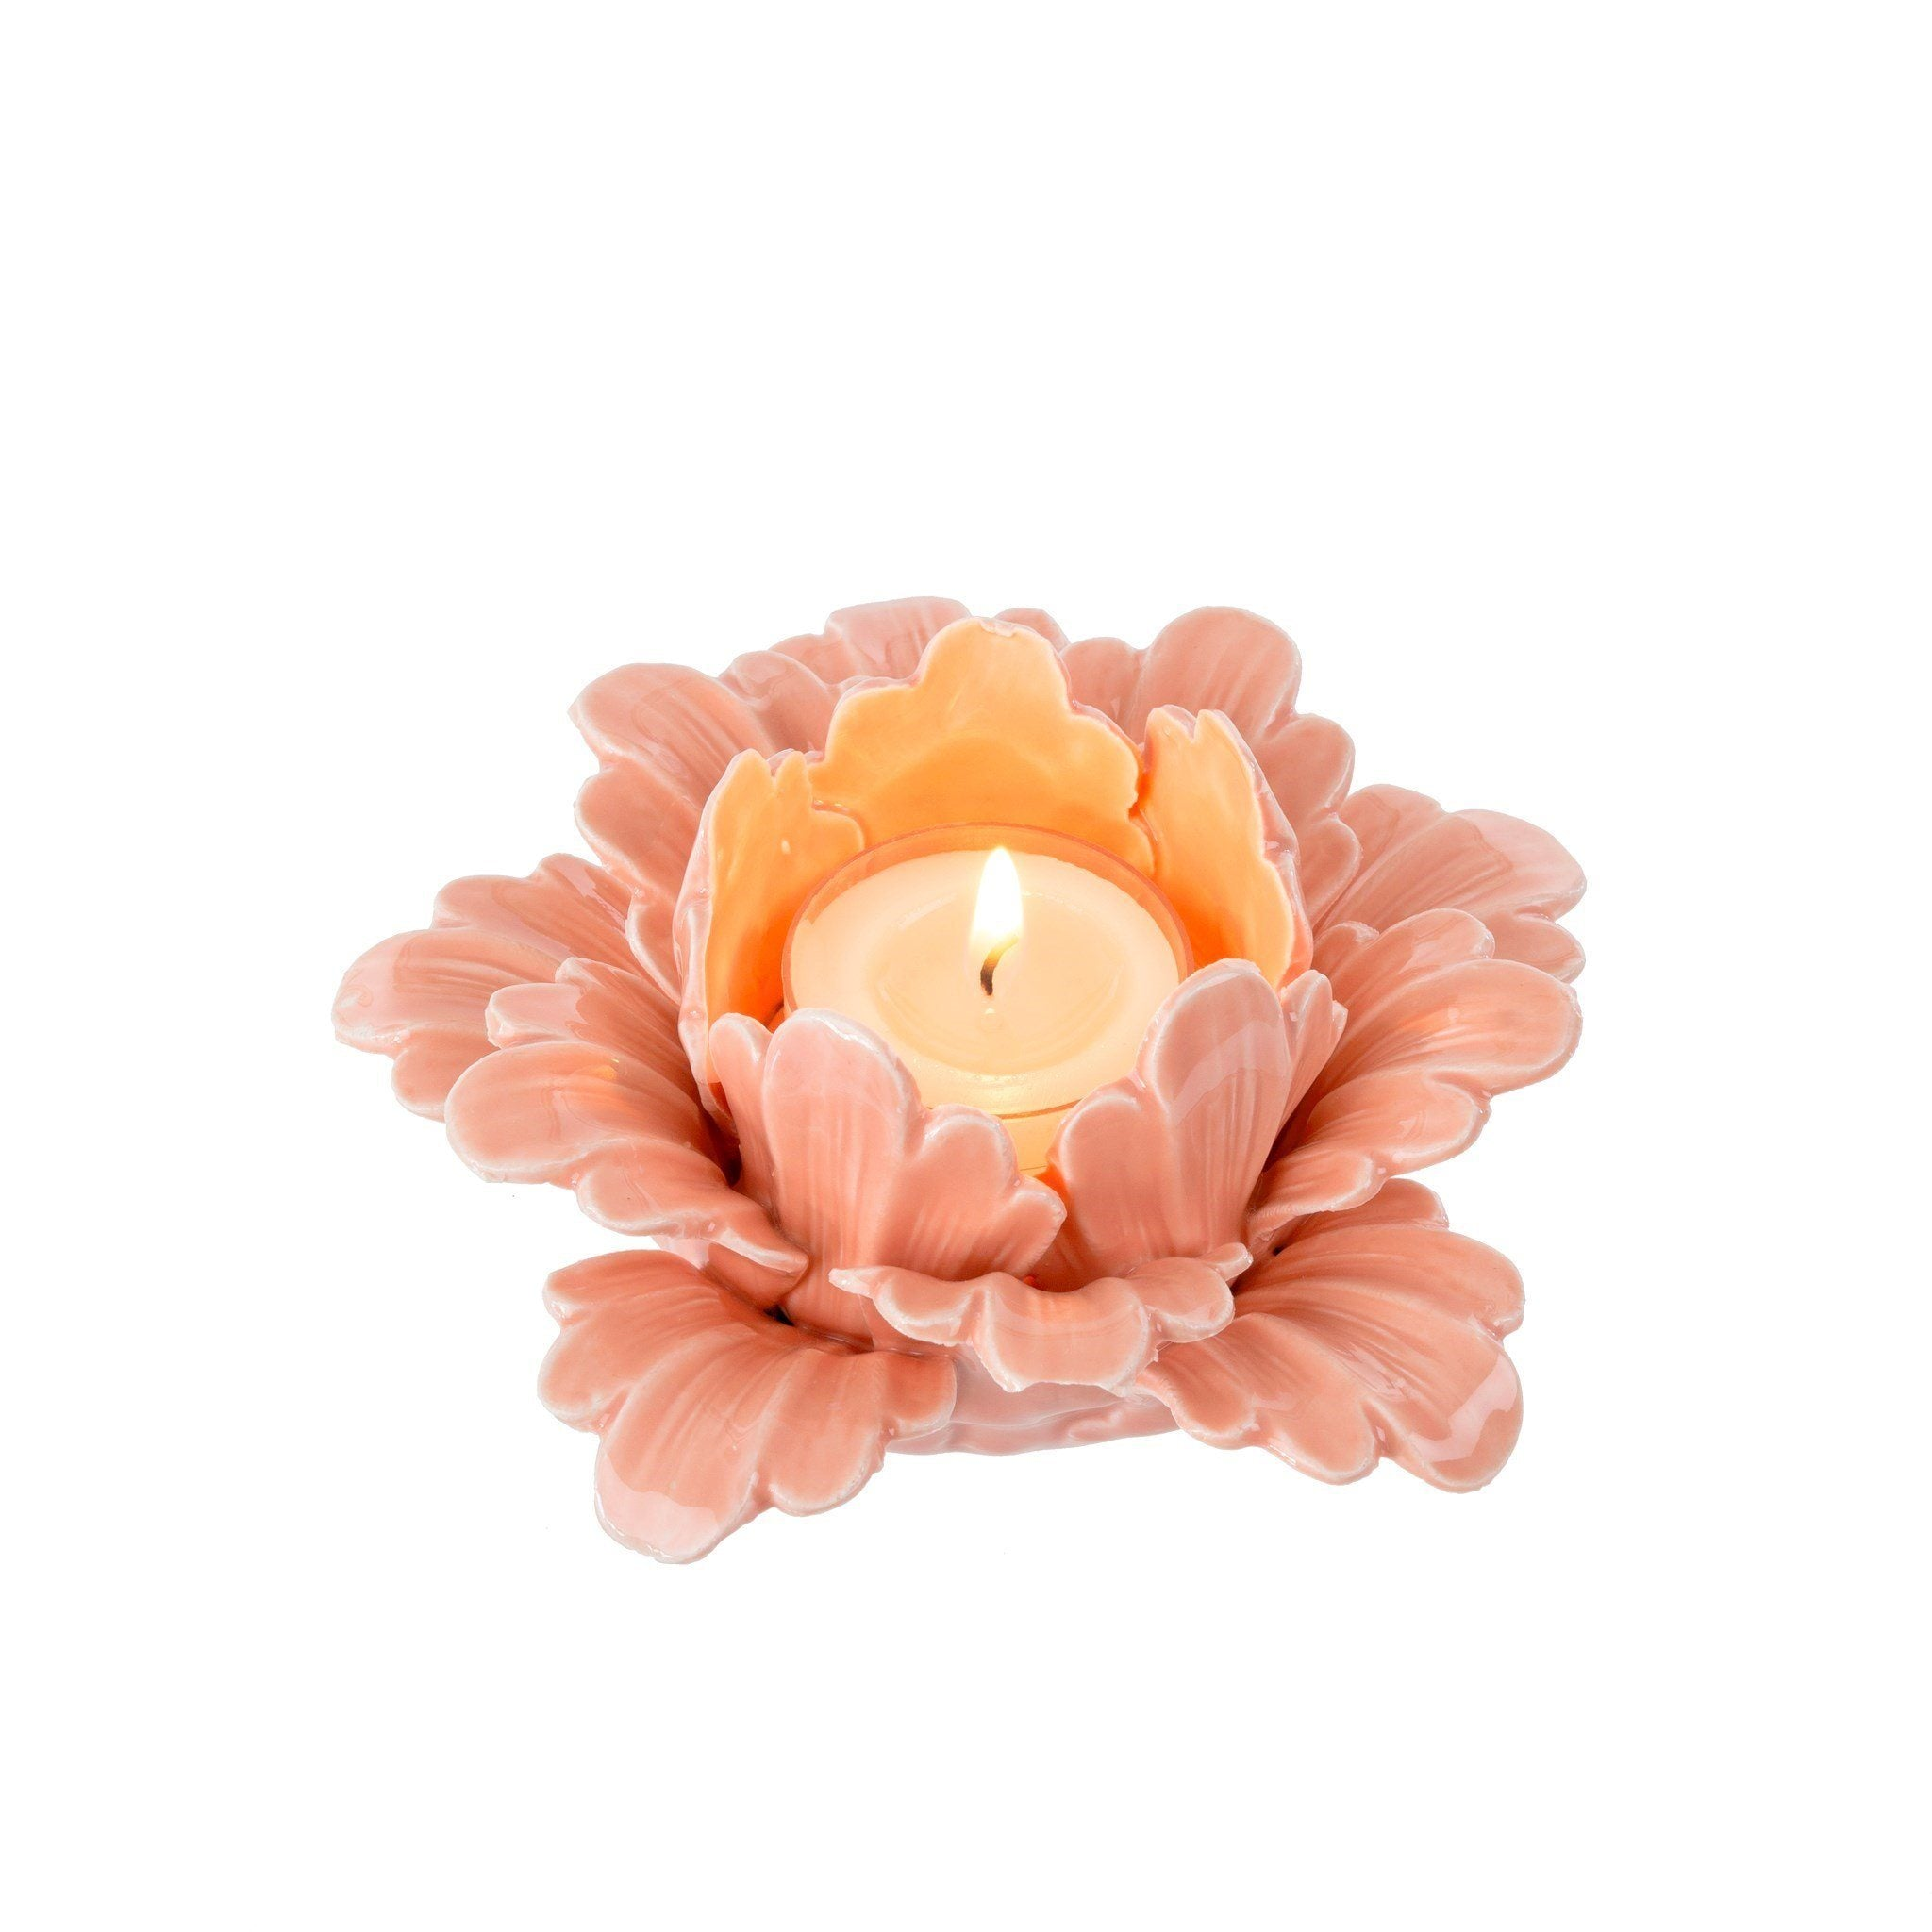 Pretty Petals Tealight in Apricot Candle Holder Indaba